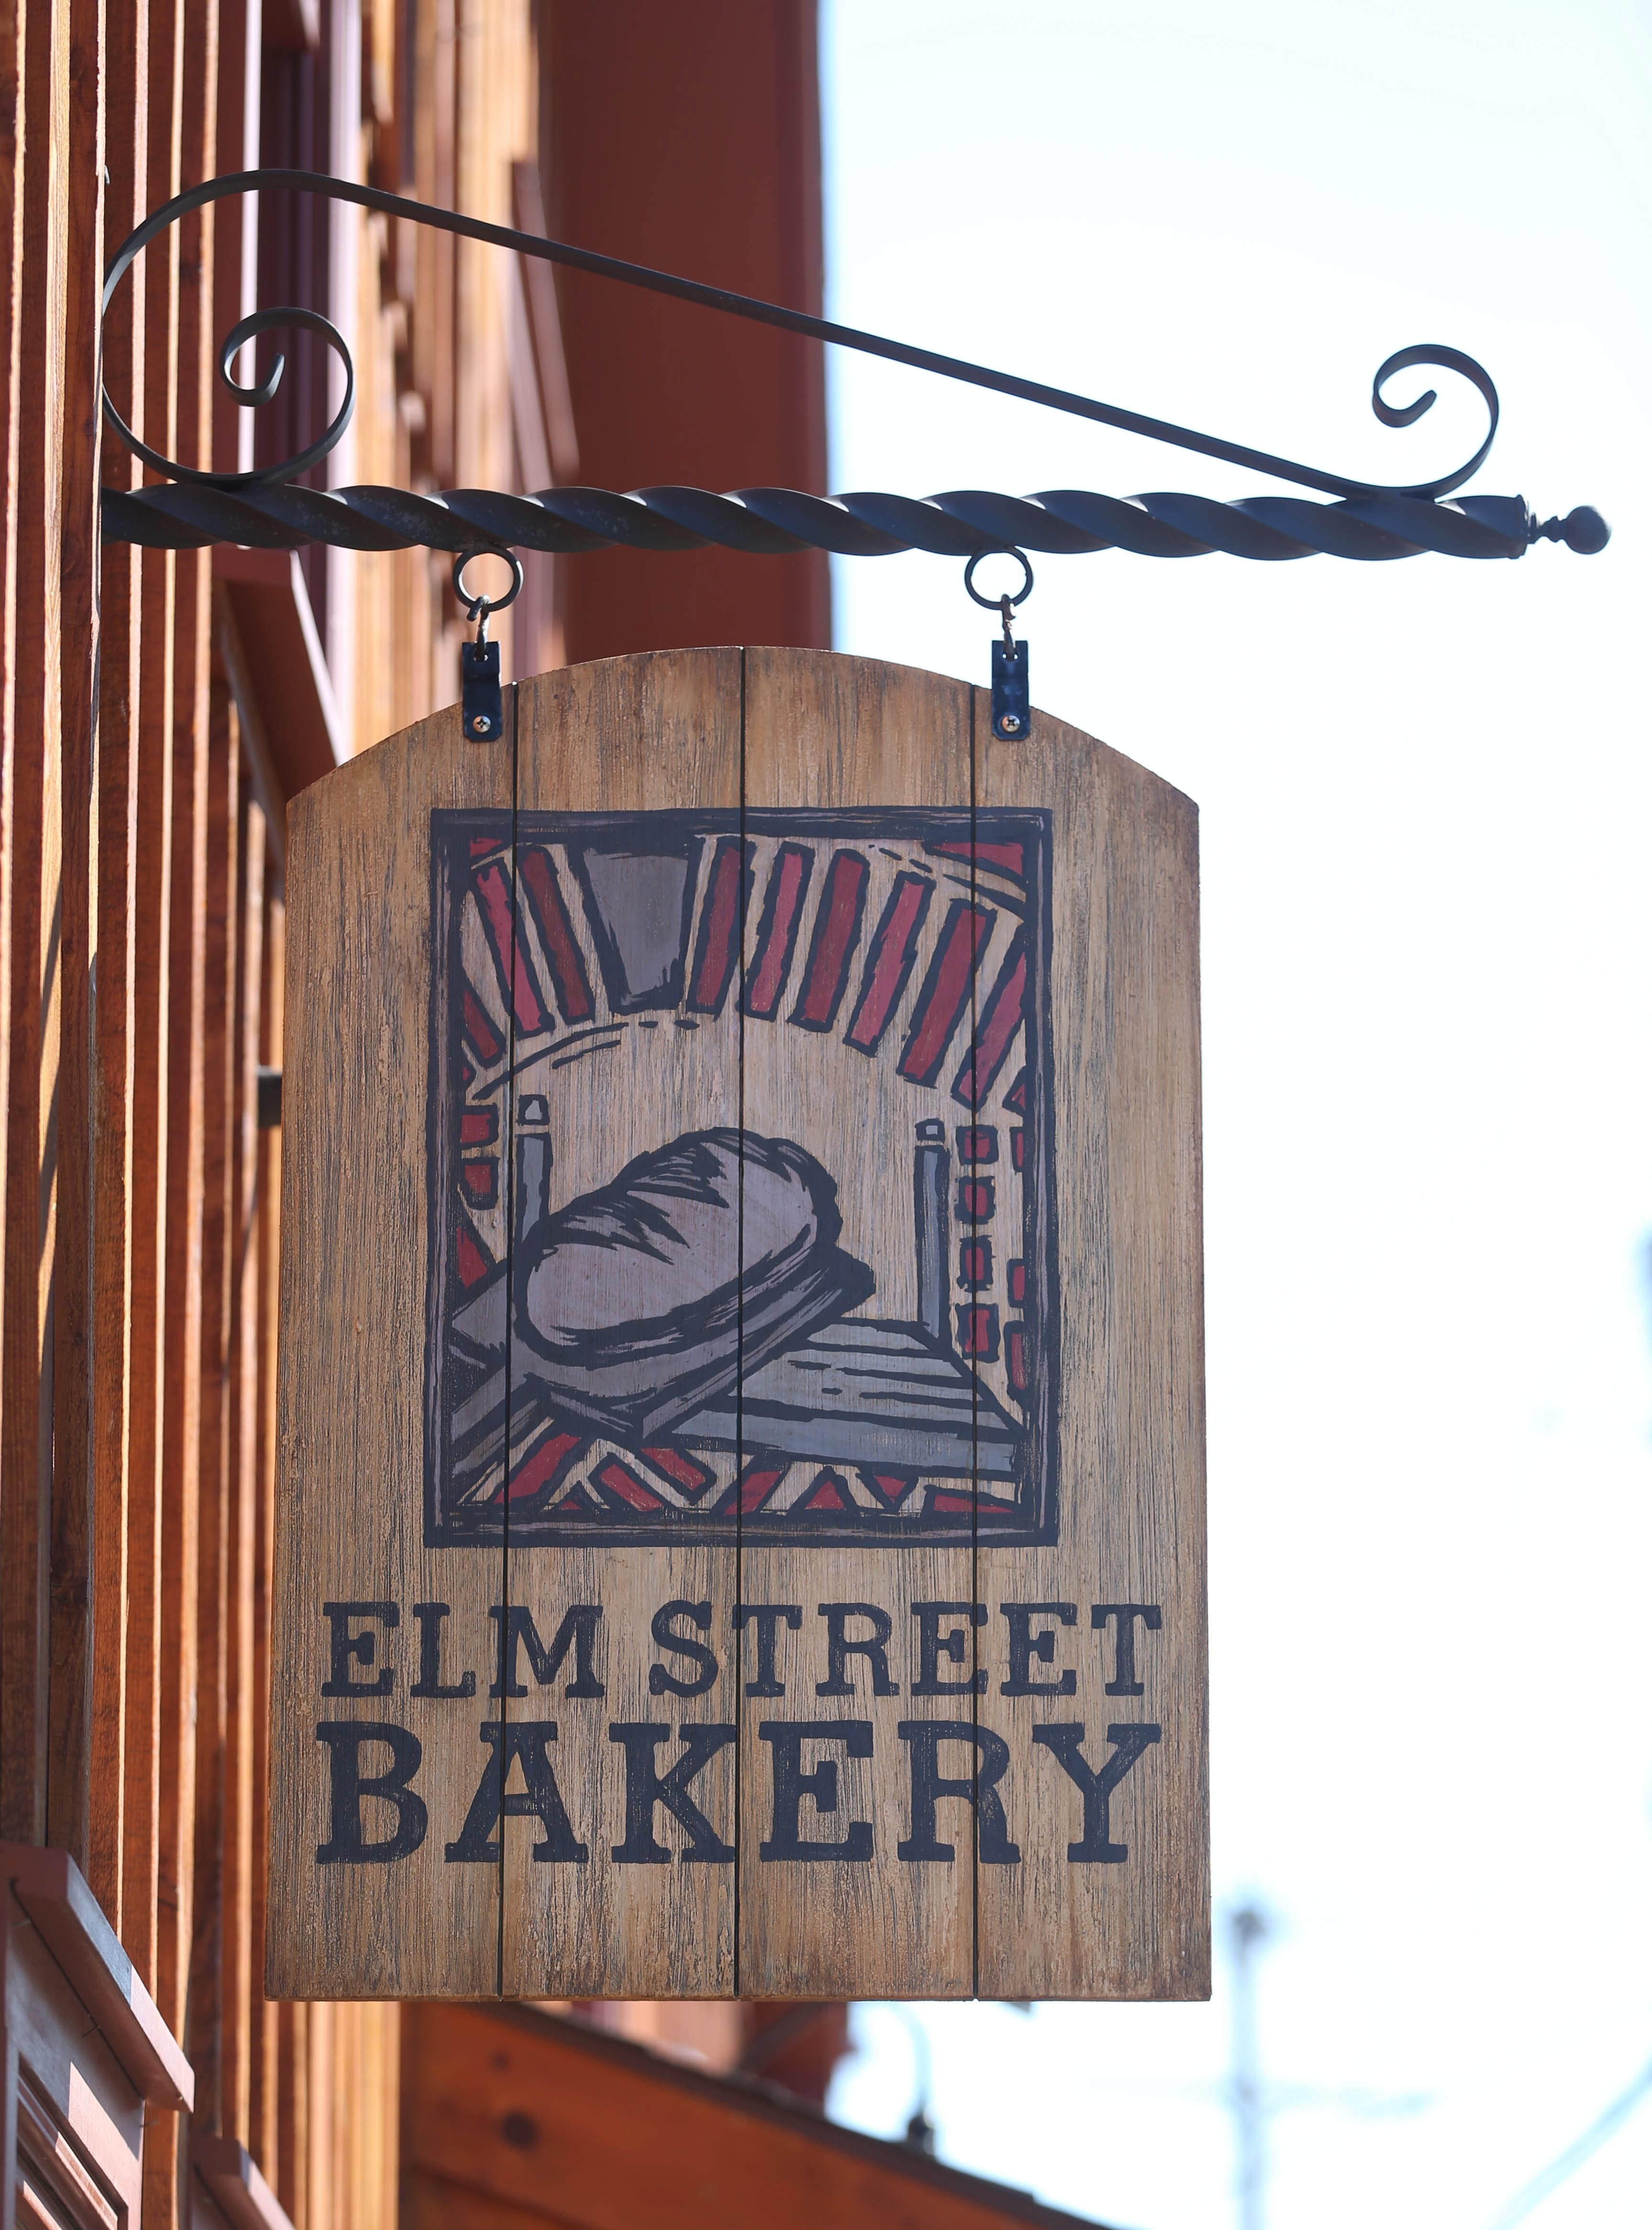 Elm Street Bakery at 72 Elm St. in East Aurora, makes a.  Photo taken, Tuesday, Sept. 15, 2015.  (Sharon Cantillon/Buffalo News)